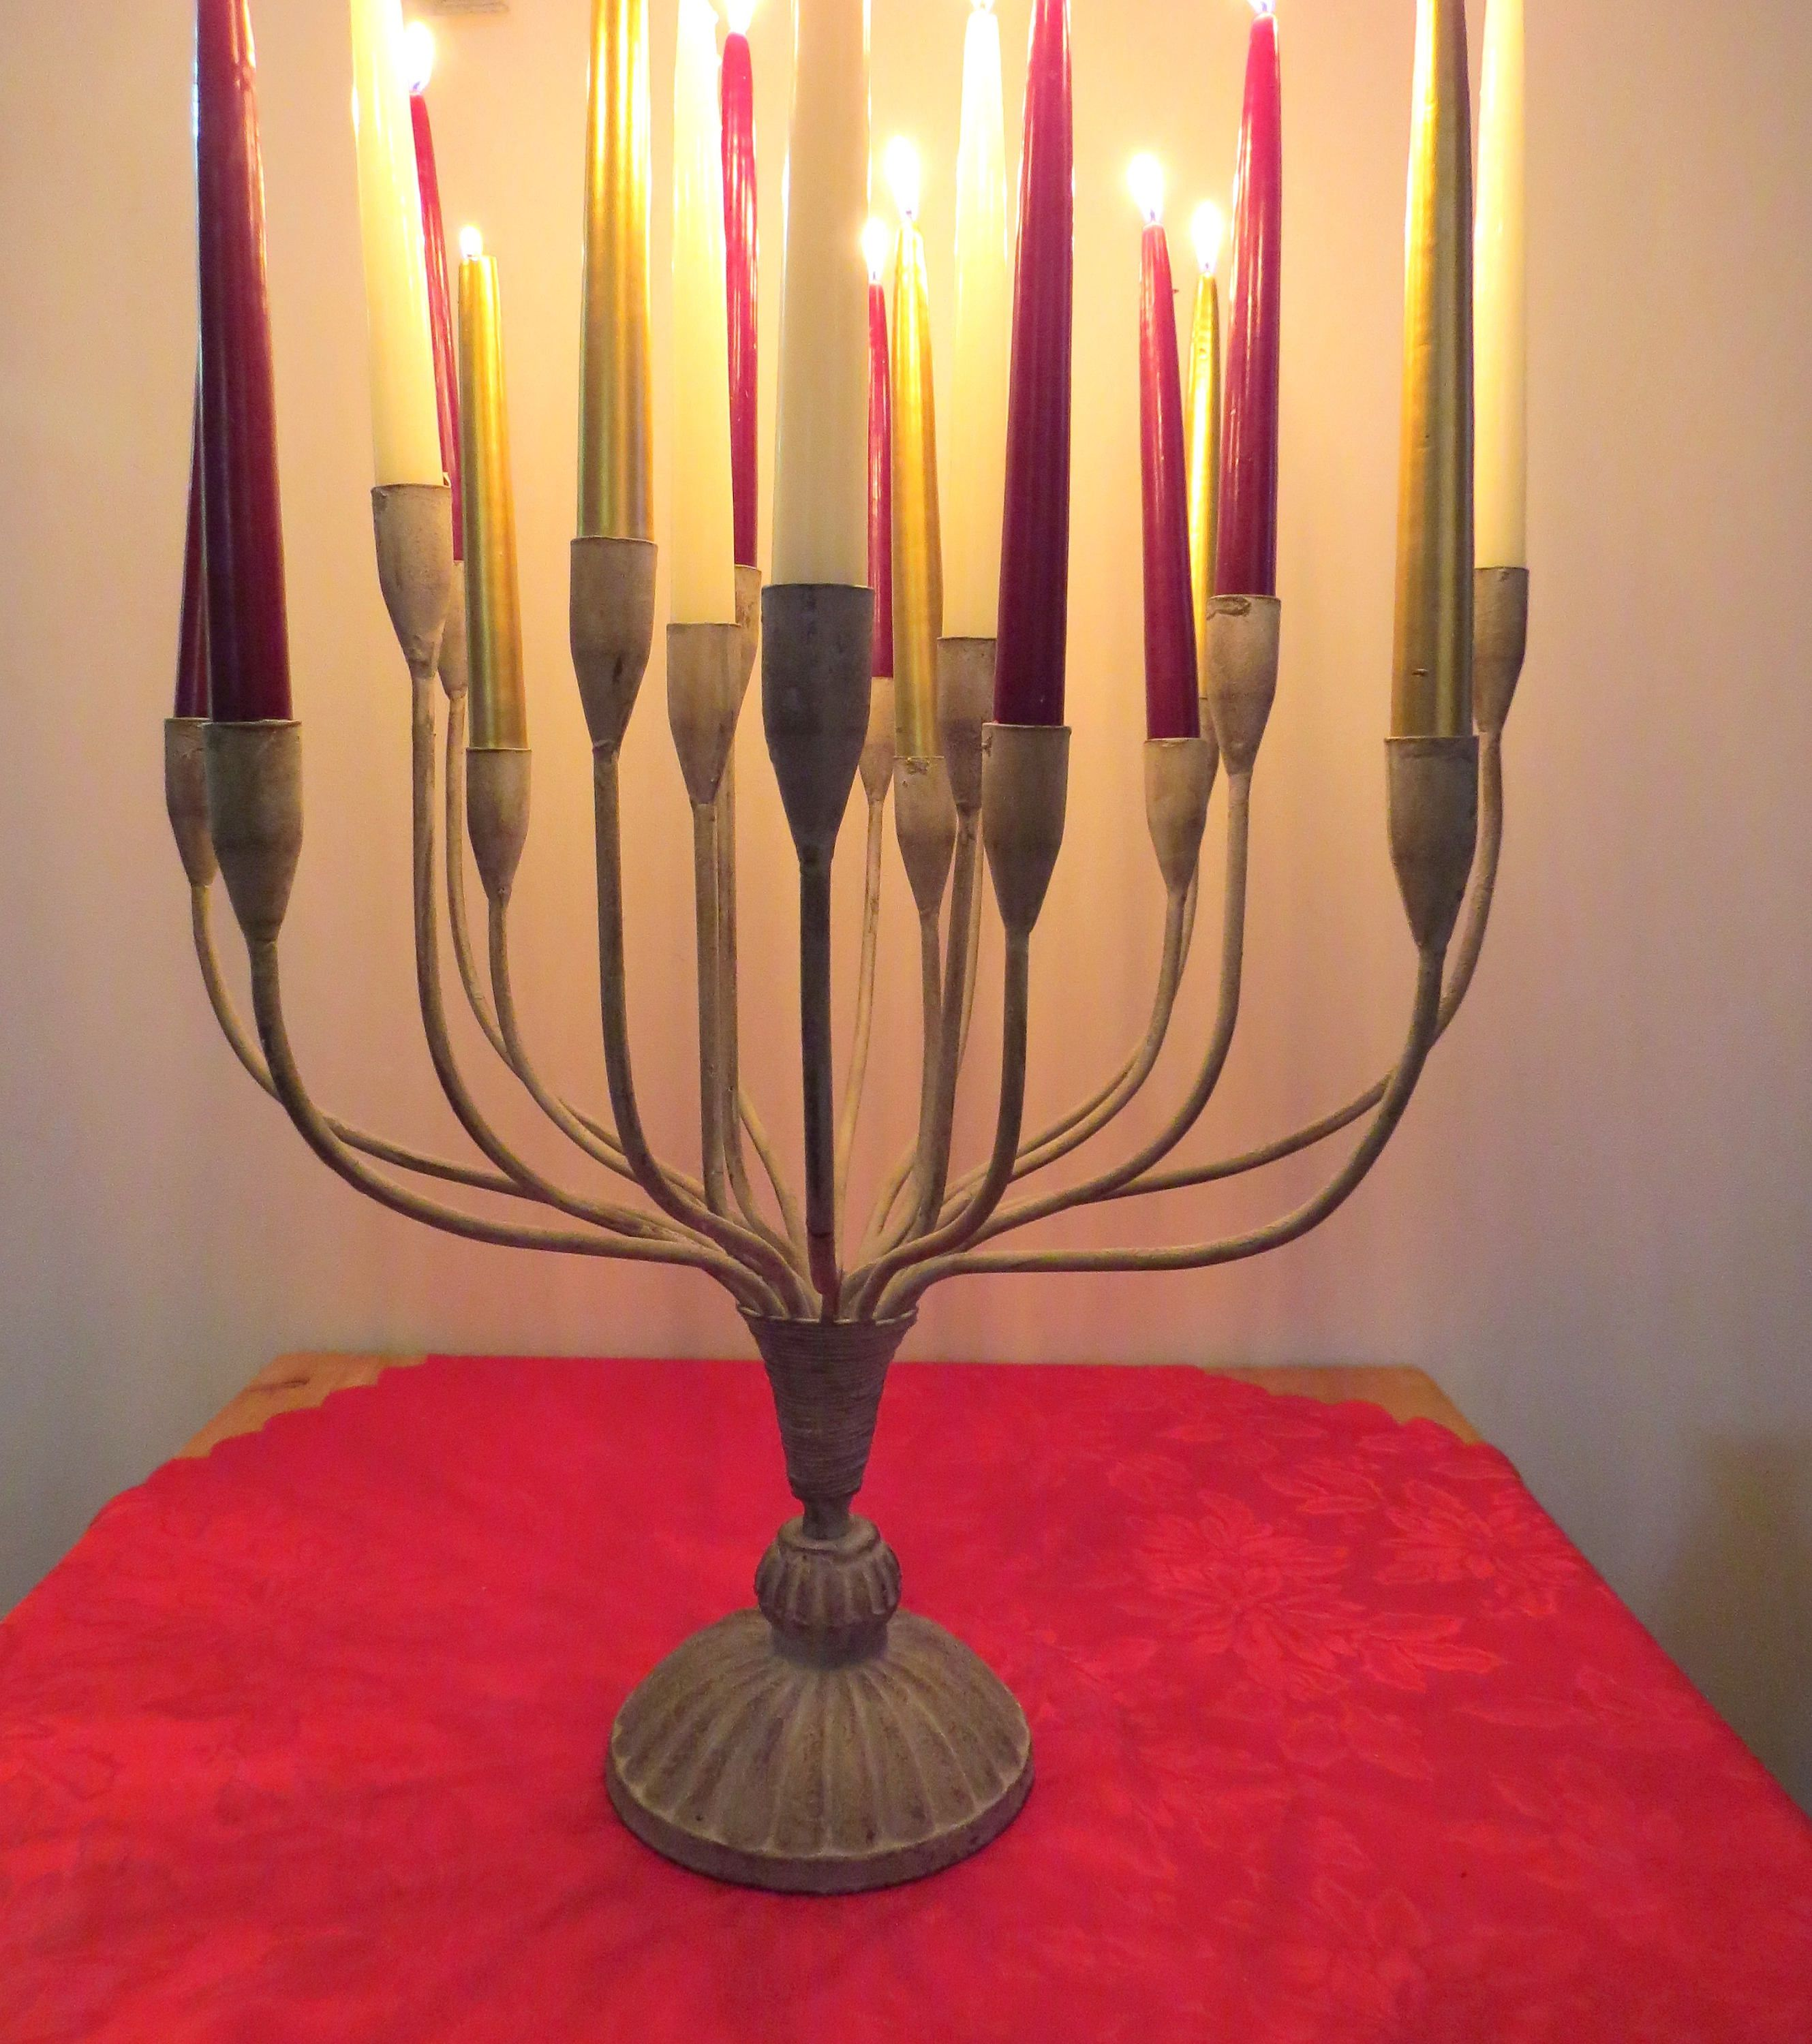 Large Candelabra 20 Arm Candle Holder Church Candelabra Etsy Candles Metal Candelabra Candle Holders